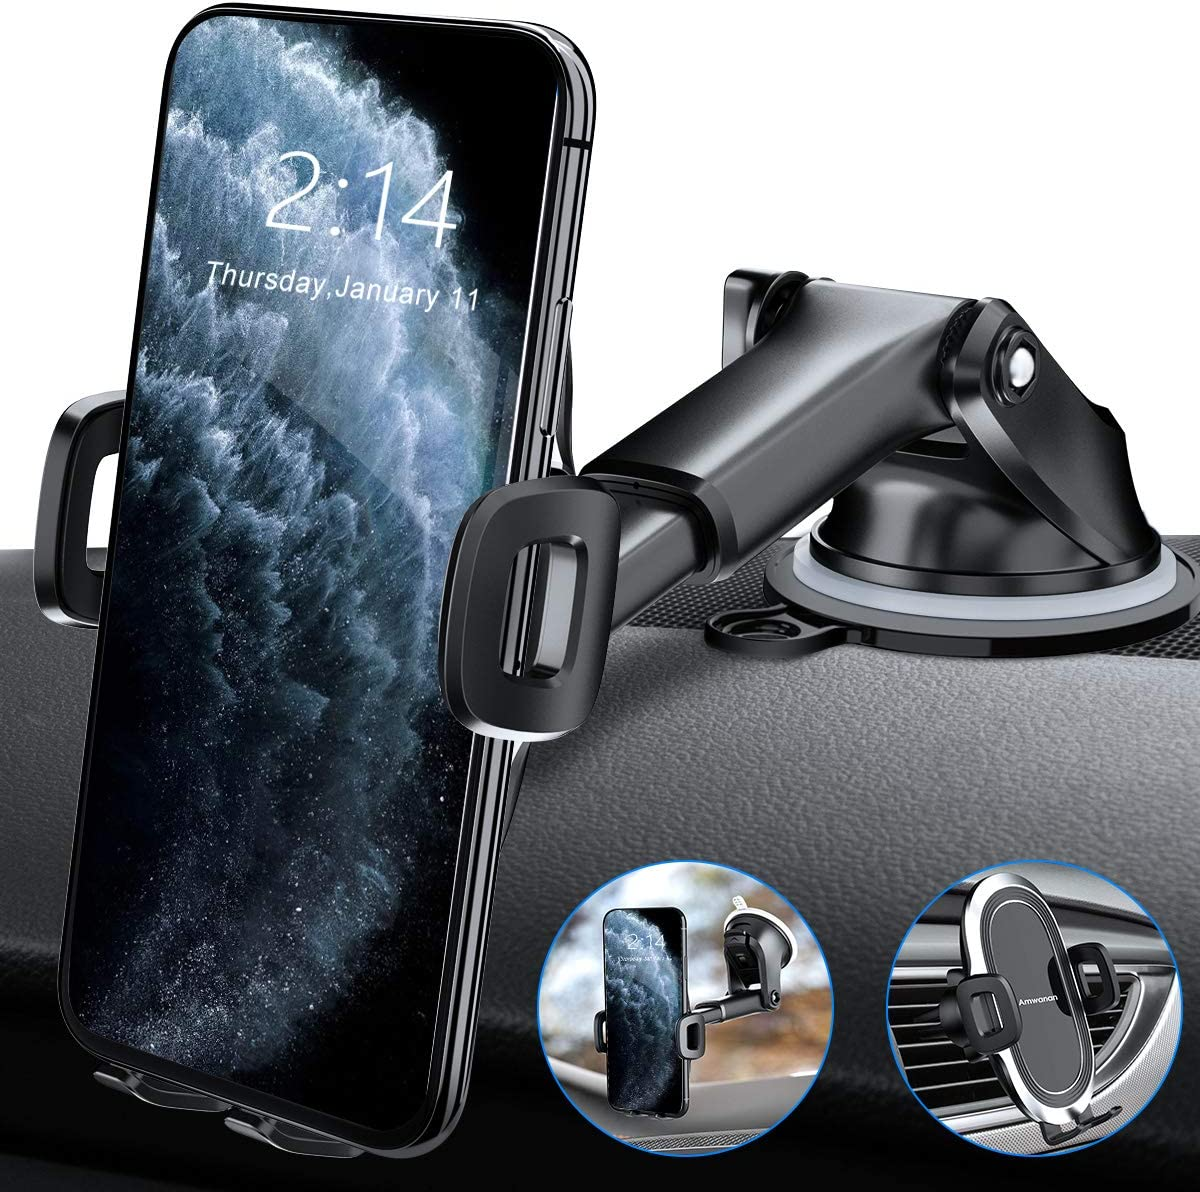 Hands-Free Cell Phone Holder for Dashboard Amwanan Car Phone Mount Samsung Google and Other Smartphones Windshield and Air Vent with Suction Pad Compatible with iPhone LG